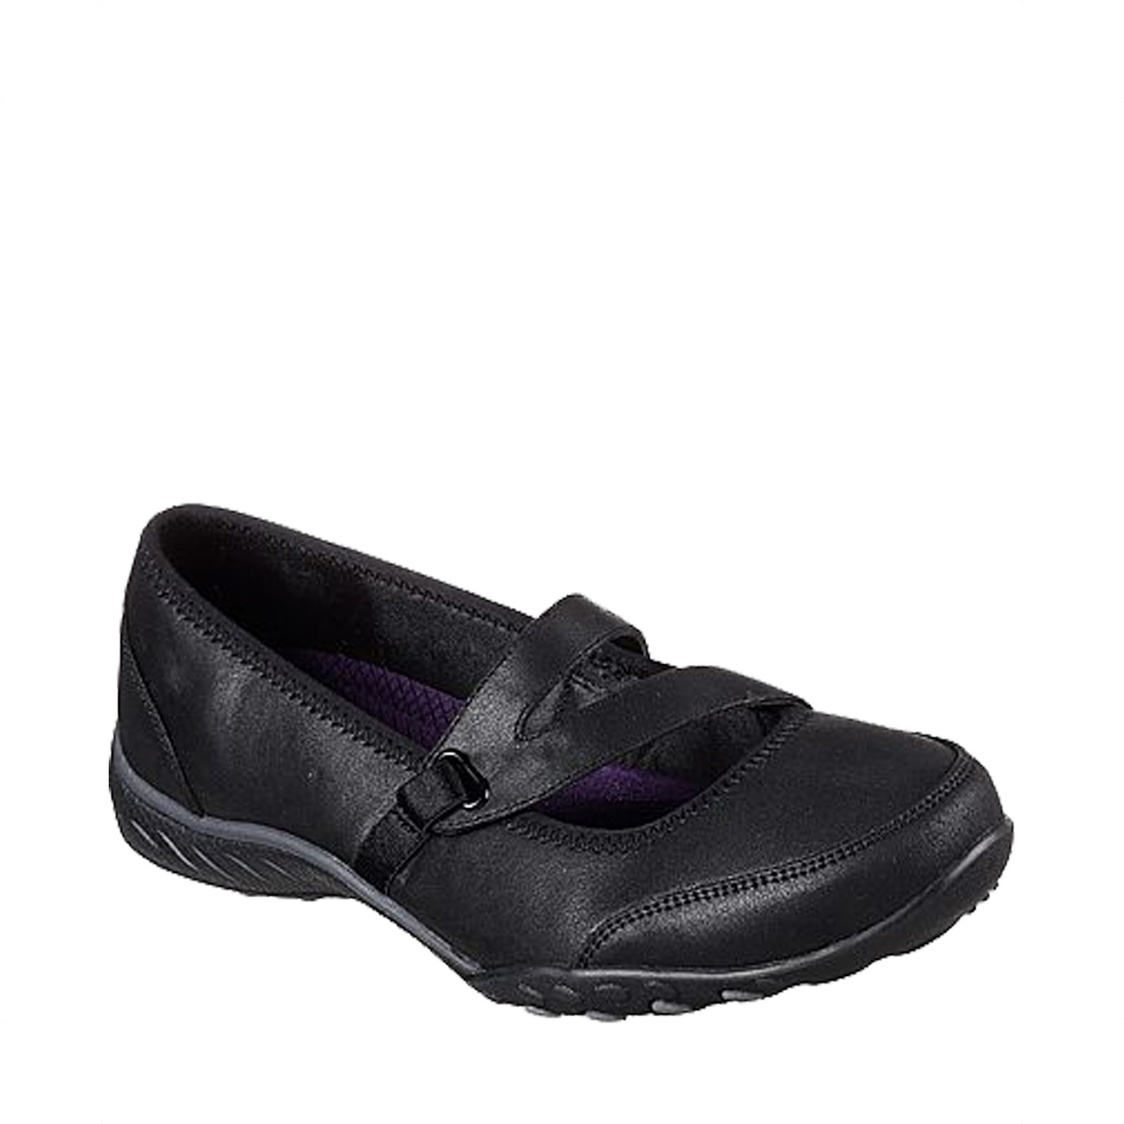 Relaxed Fit  Breathe Easy - Calmly 23209 - Black